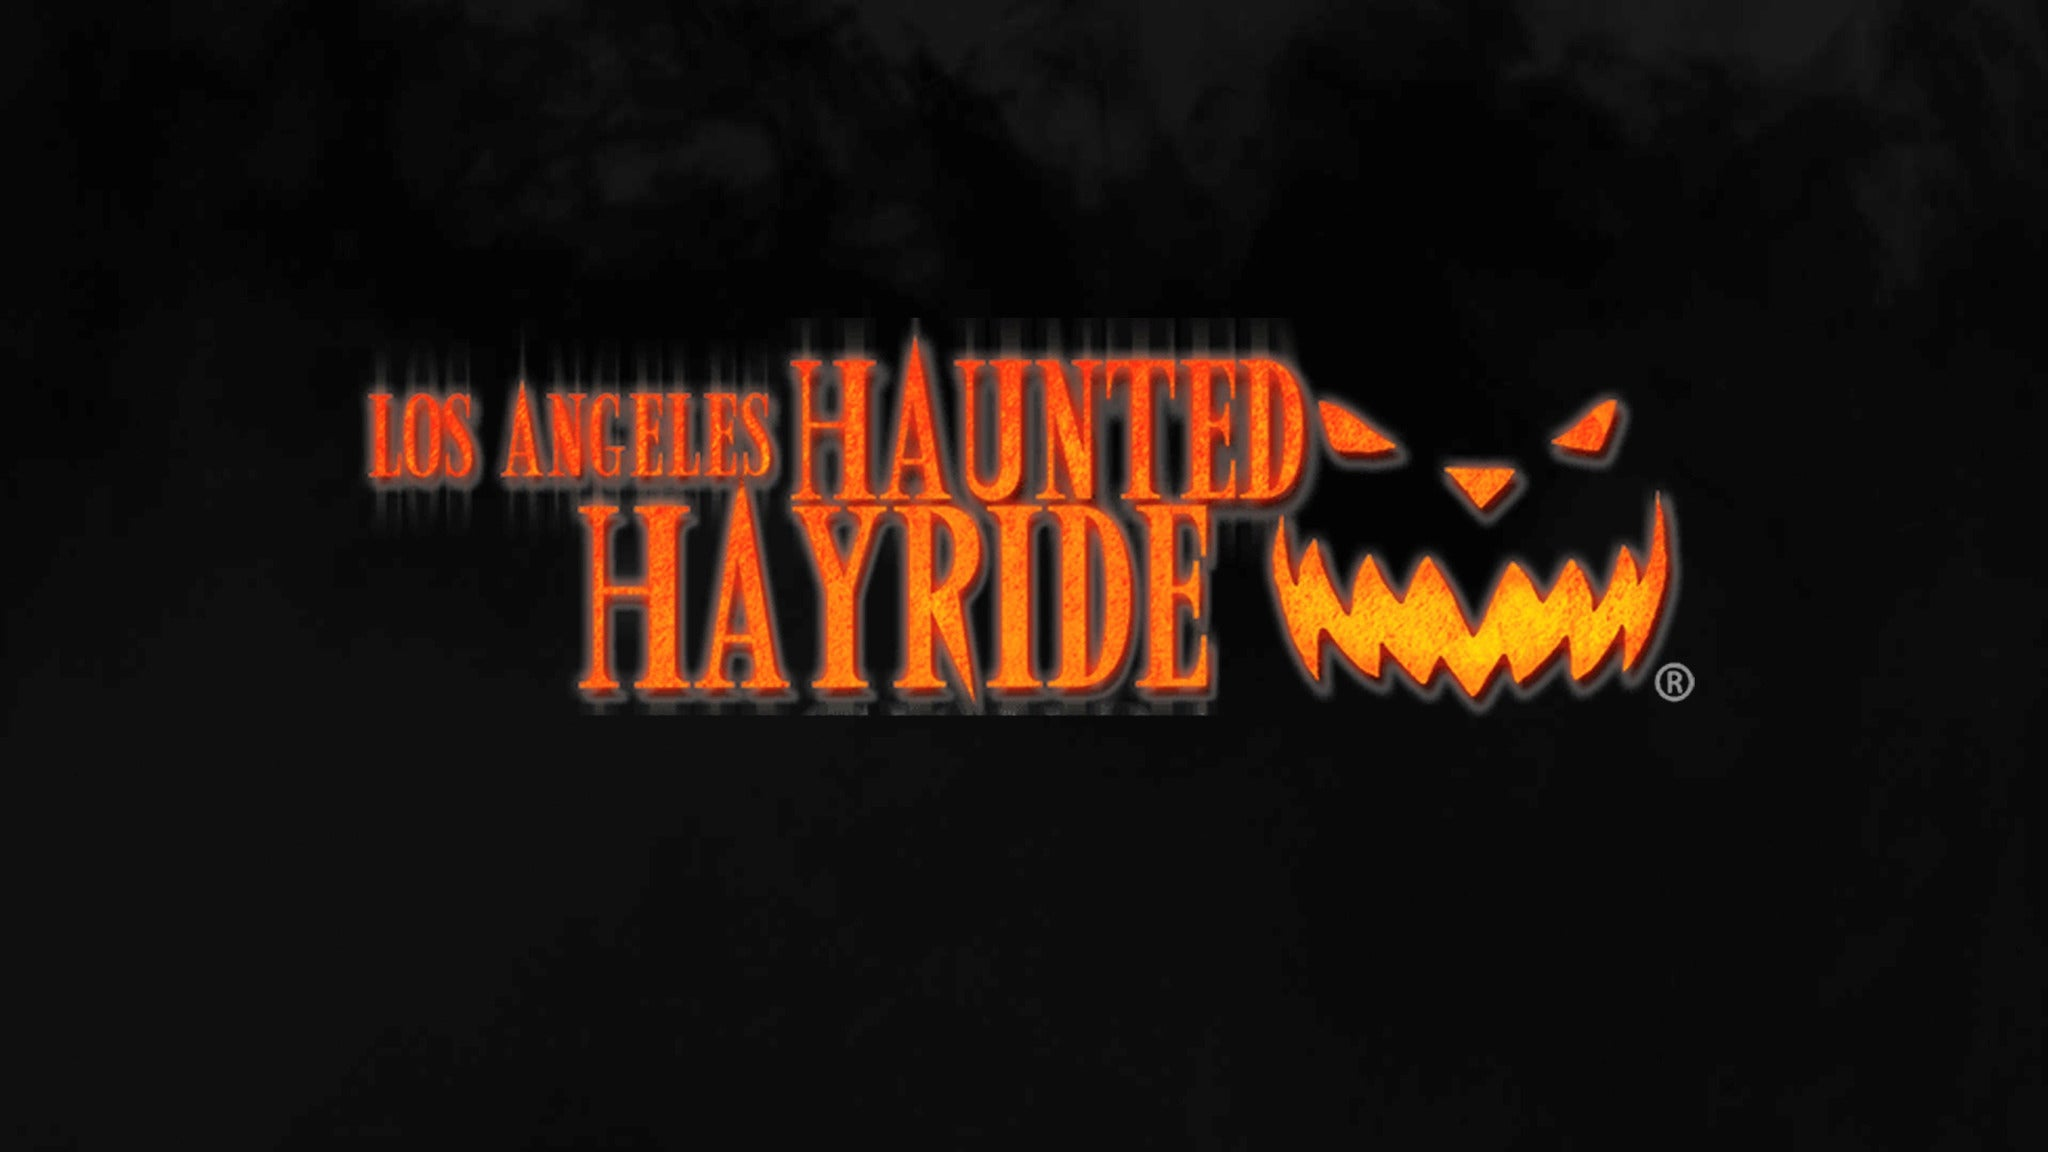 Main image for event titled Los Angeles Haunted Hayride: Live Drive Up Experience- September 25th, 2020